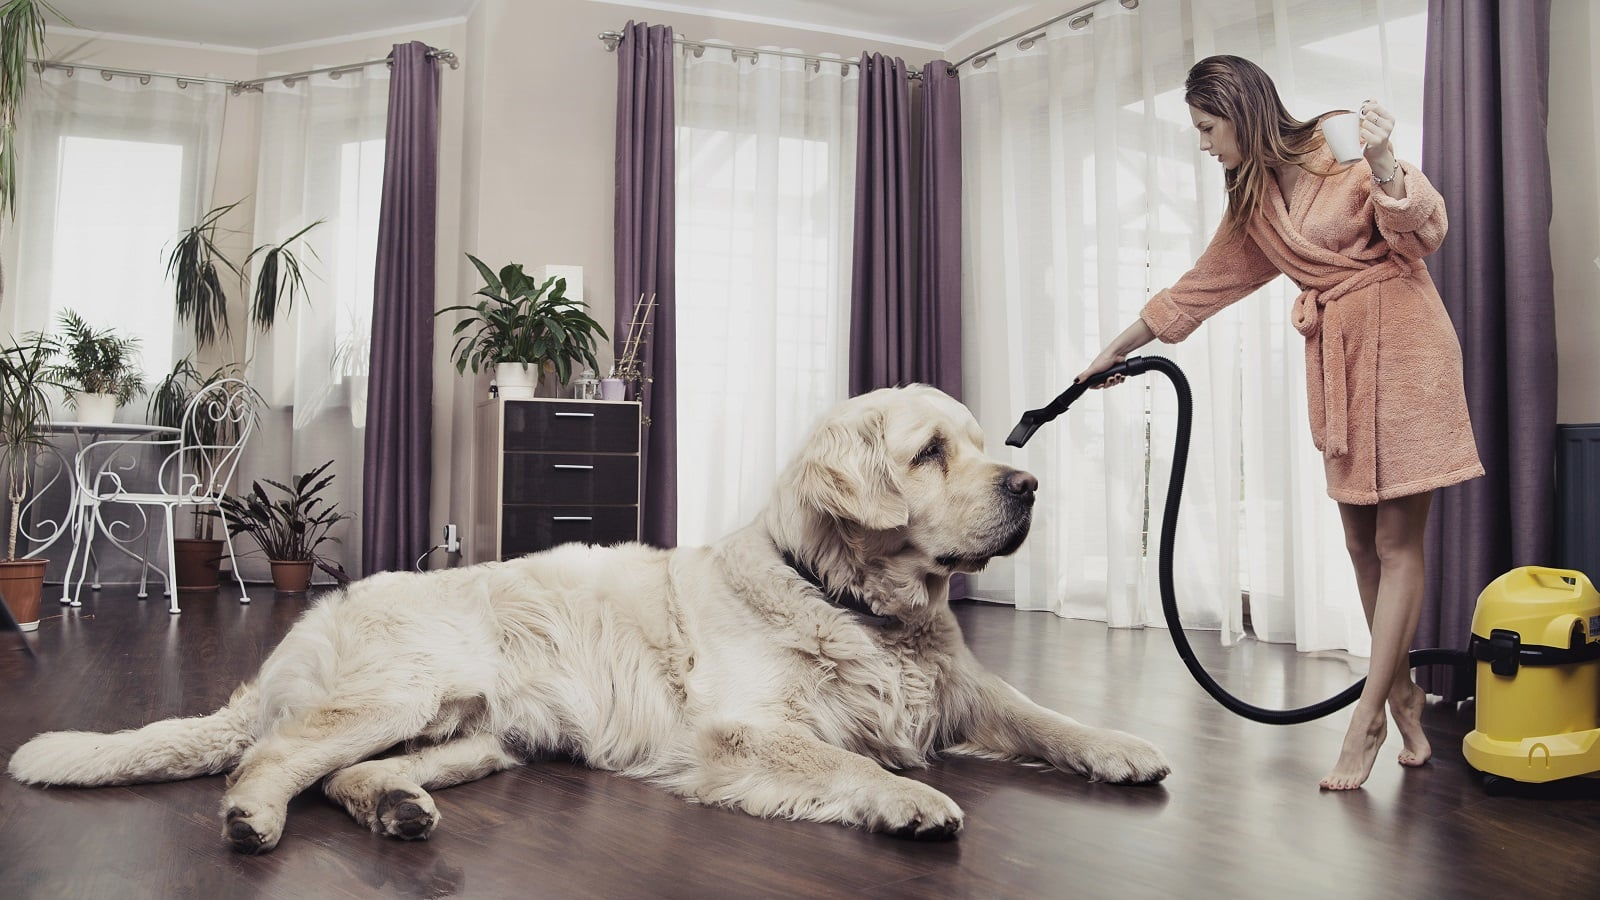 https://devices4home.com/wp-content/uploads/2018/10/pet-vacuum-1600.jpg